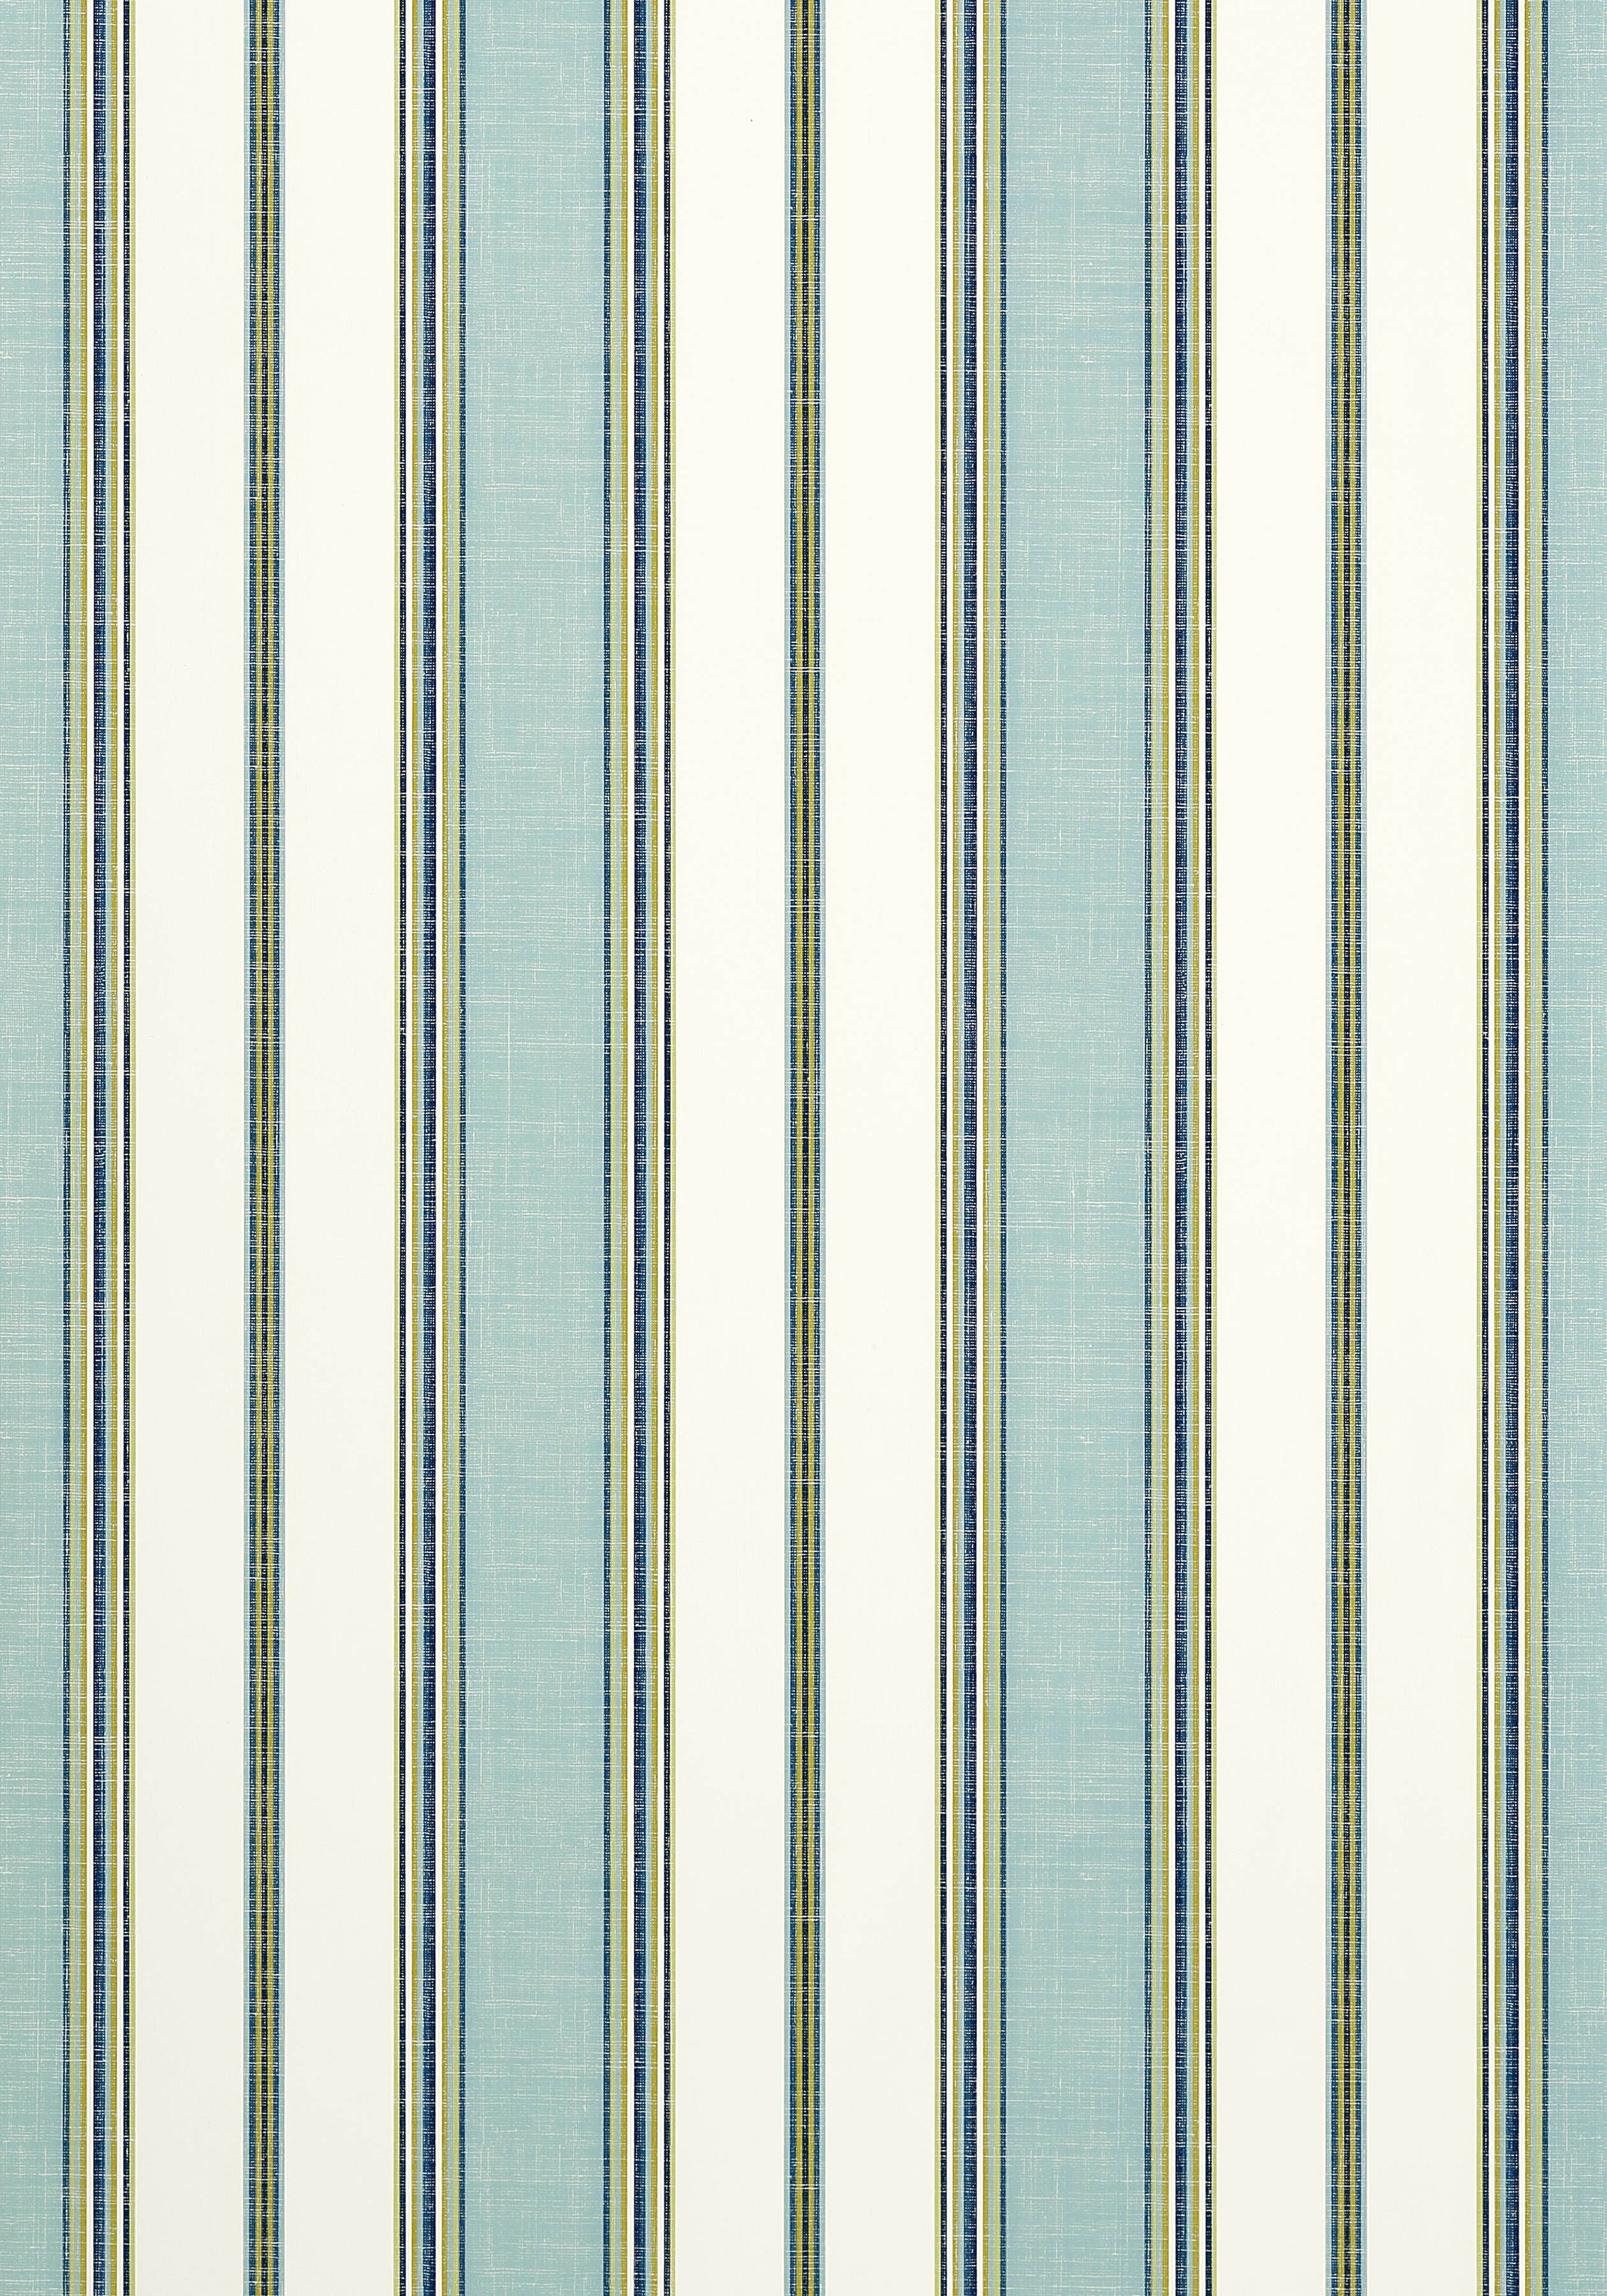 BOHEMIAN STRIPE Coastal Blue T Collection Monterey from